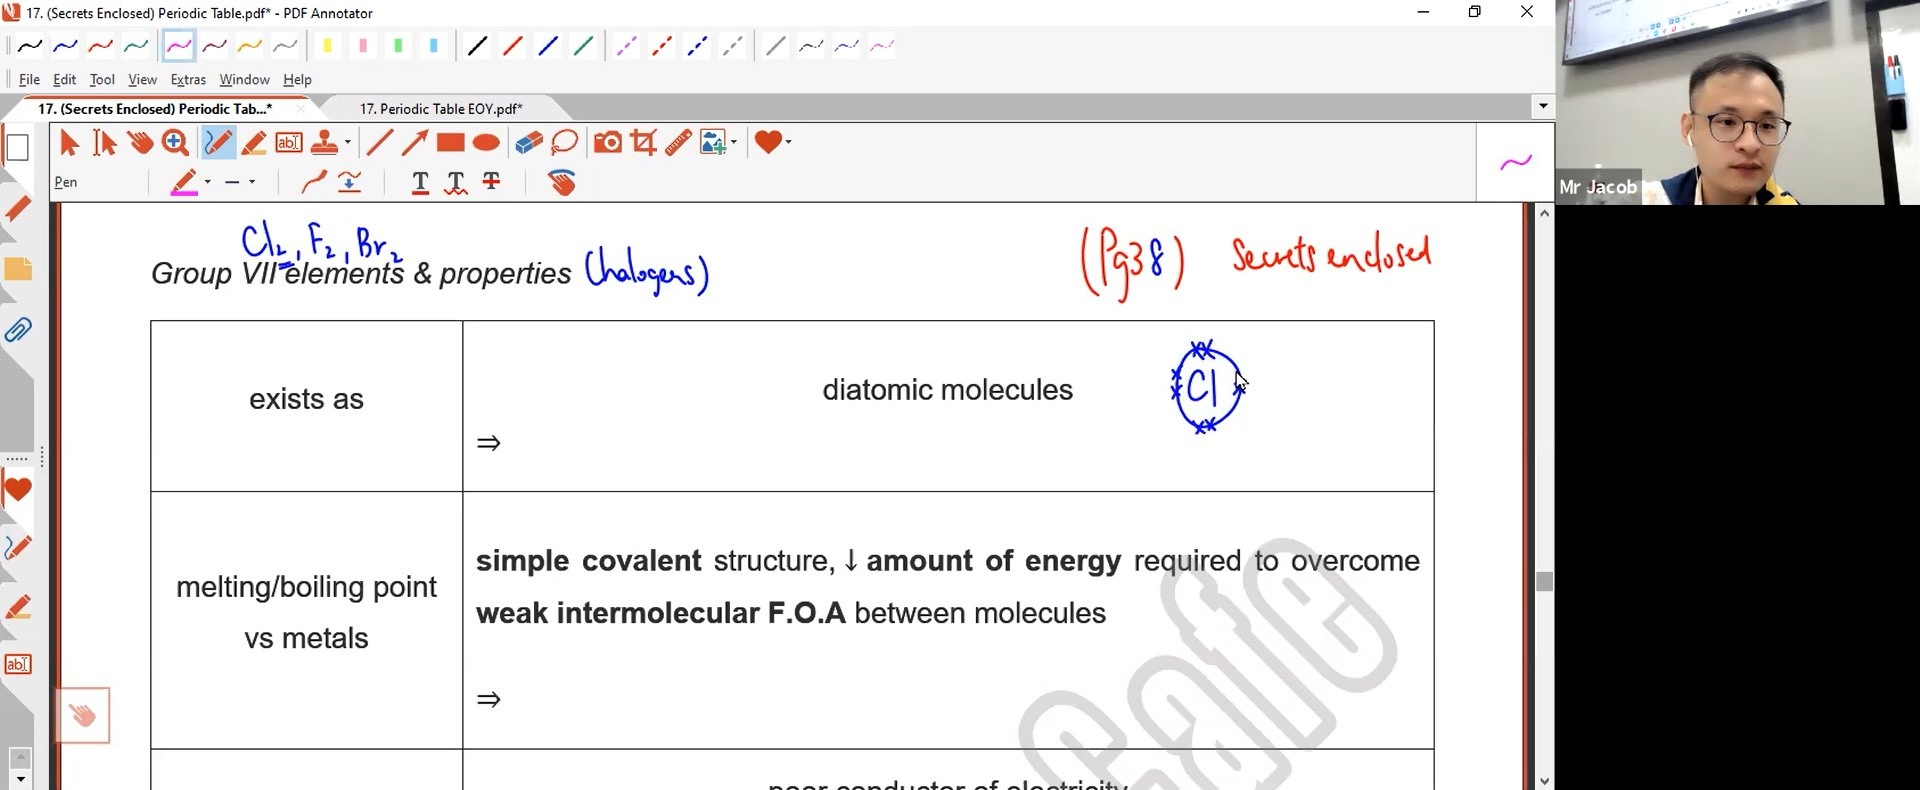 28. EOY - Periodic Table L2